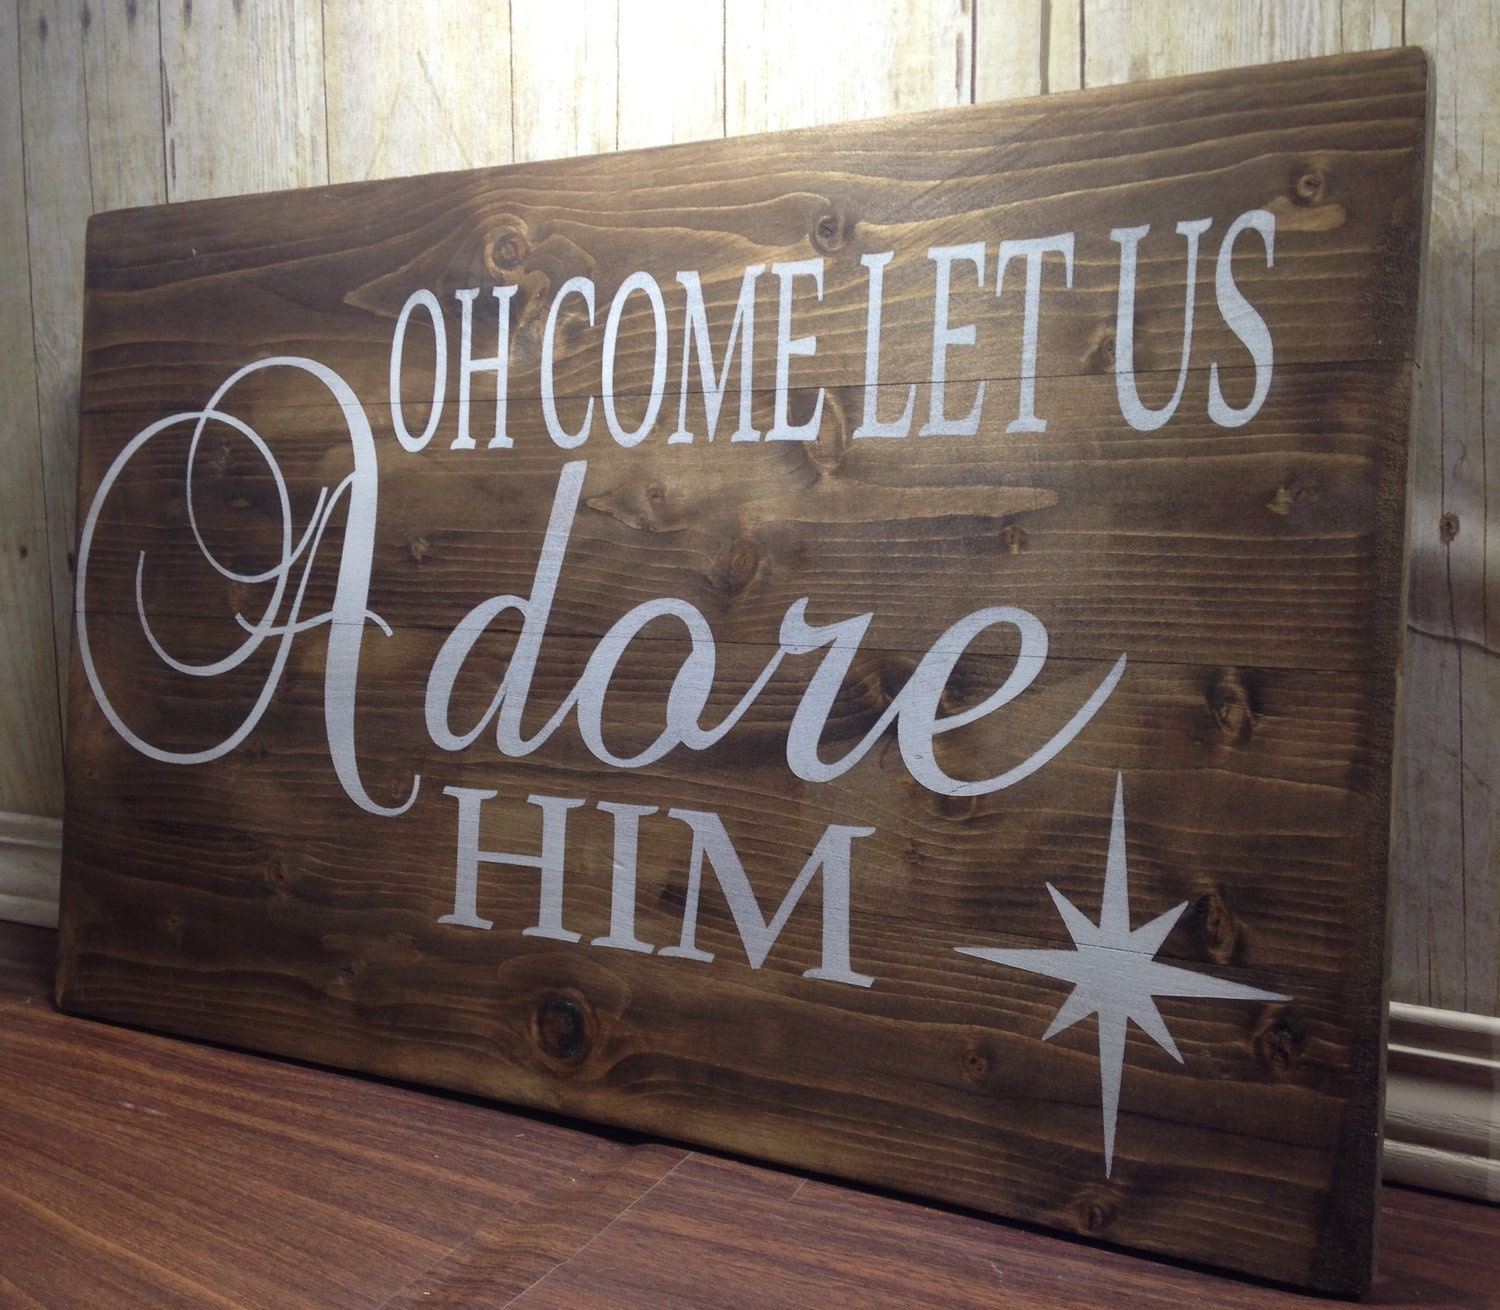 Oh Come Let Us Adore Him Wood Signs Christmas Signs Wood: Oh Come Let Us Adore Him Wood Sign/ Christian Wood Sign/